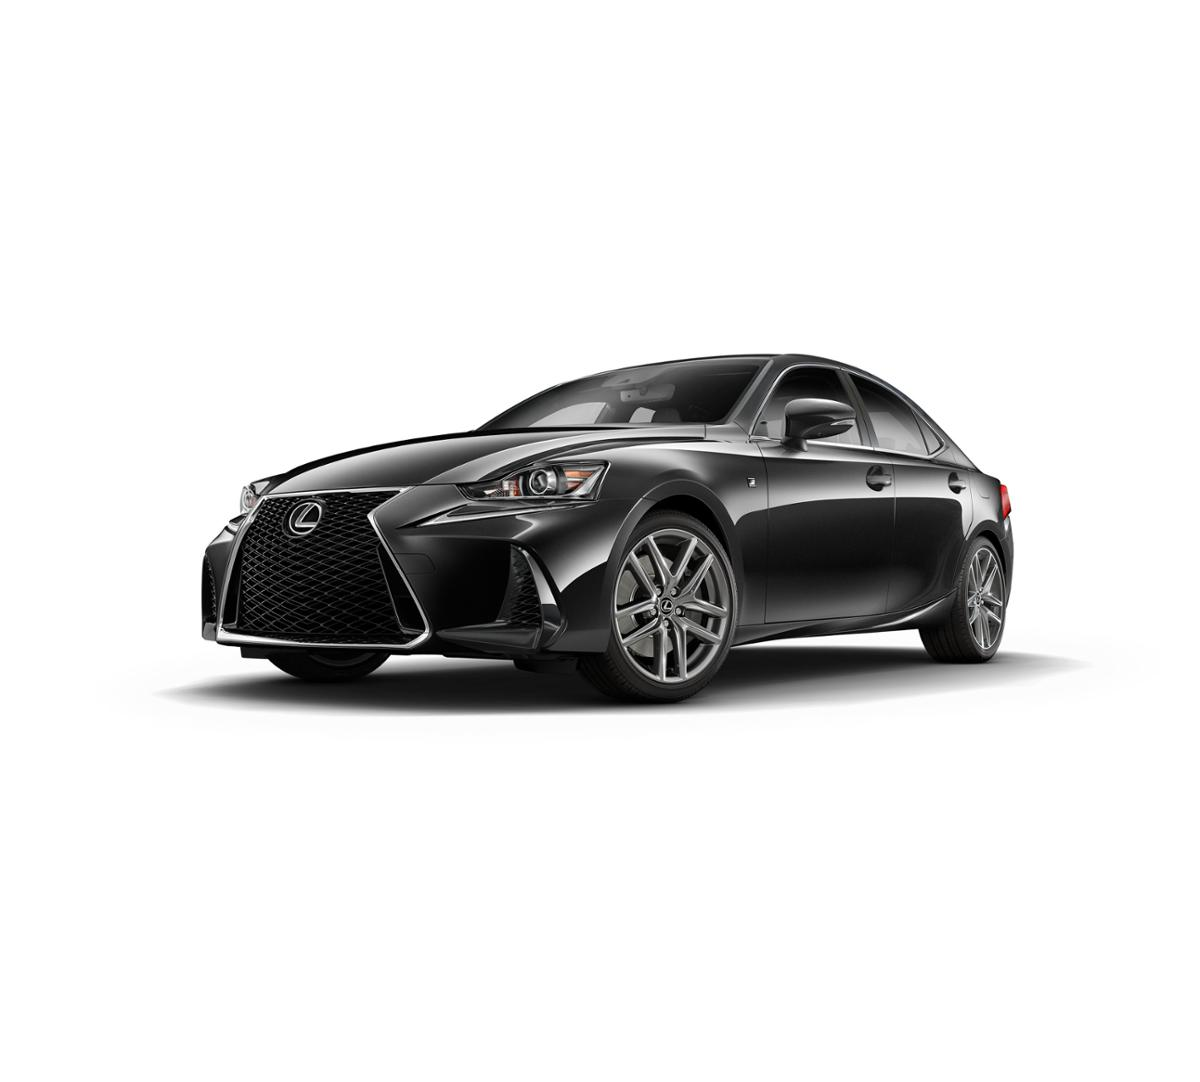 Used Lexus Is350: 2018 Lexus IS 350